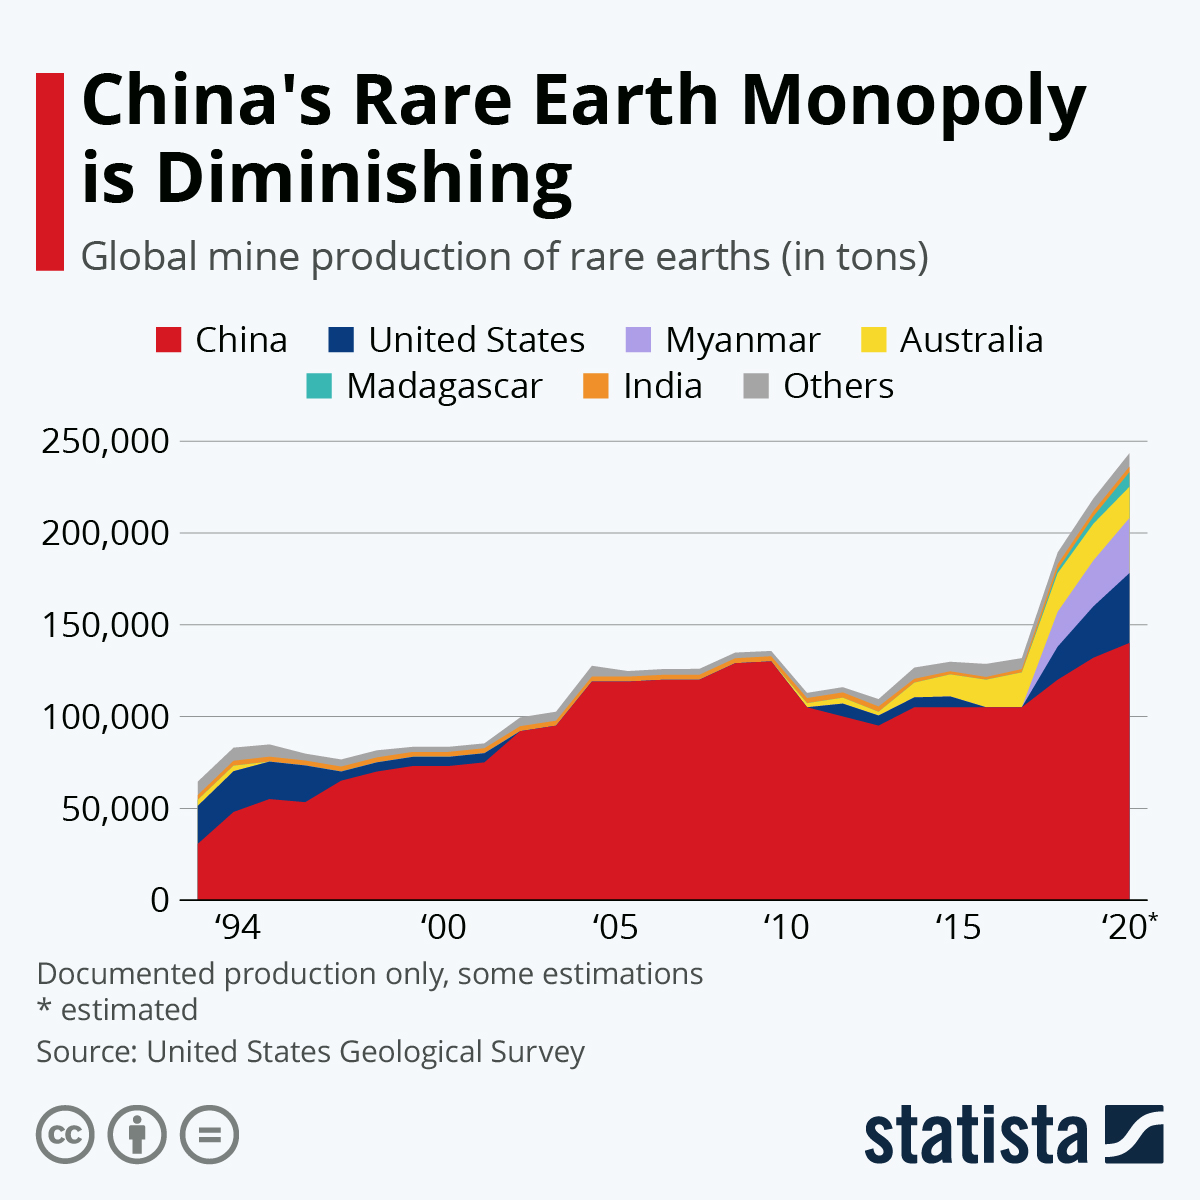 China's monopoly of rare earth is diminishing